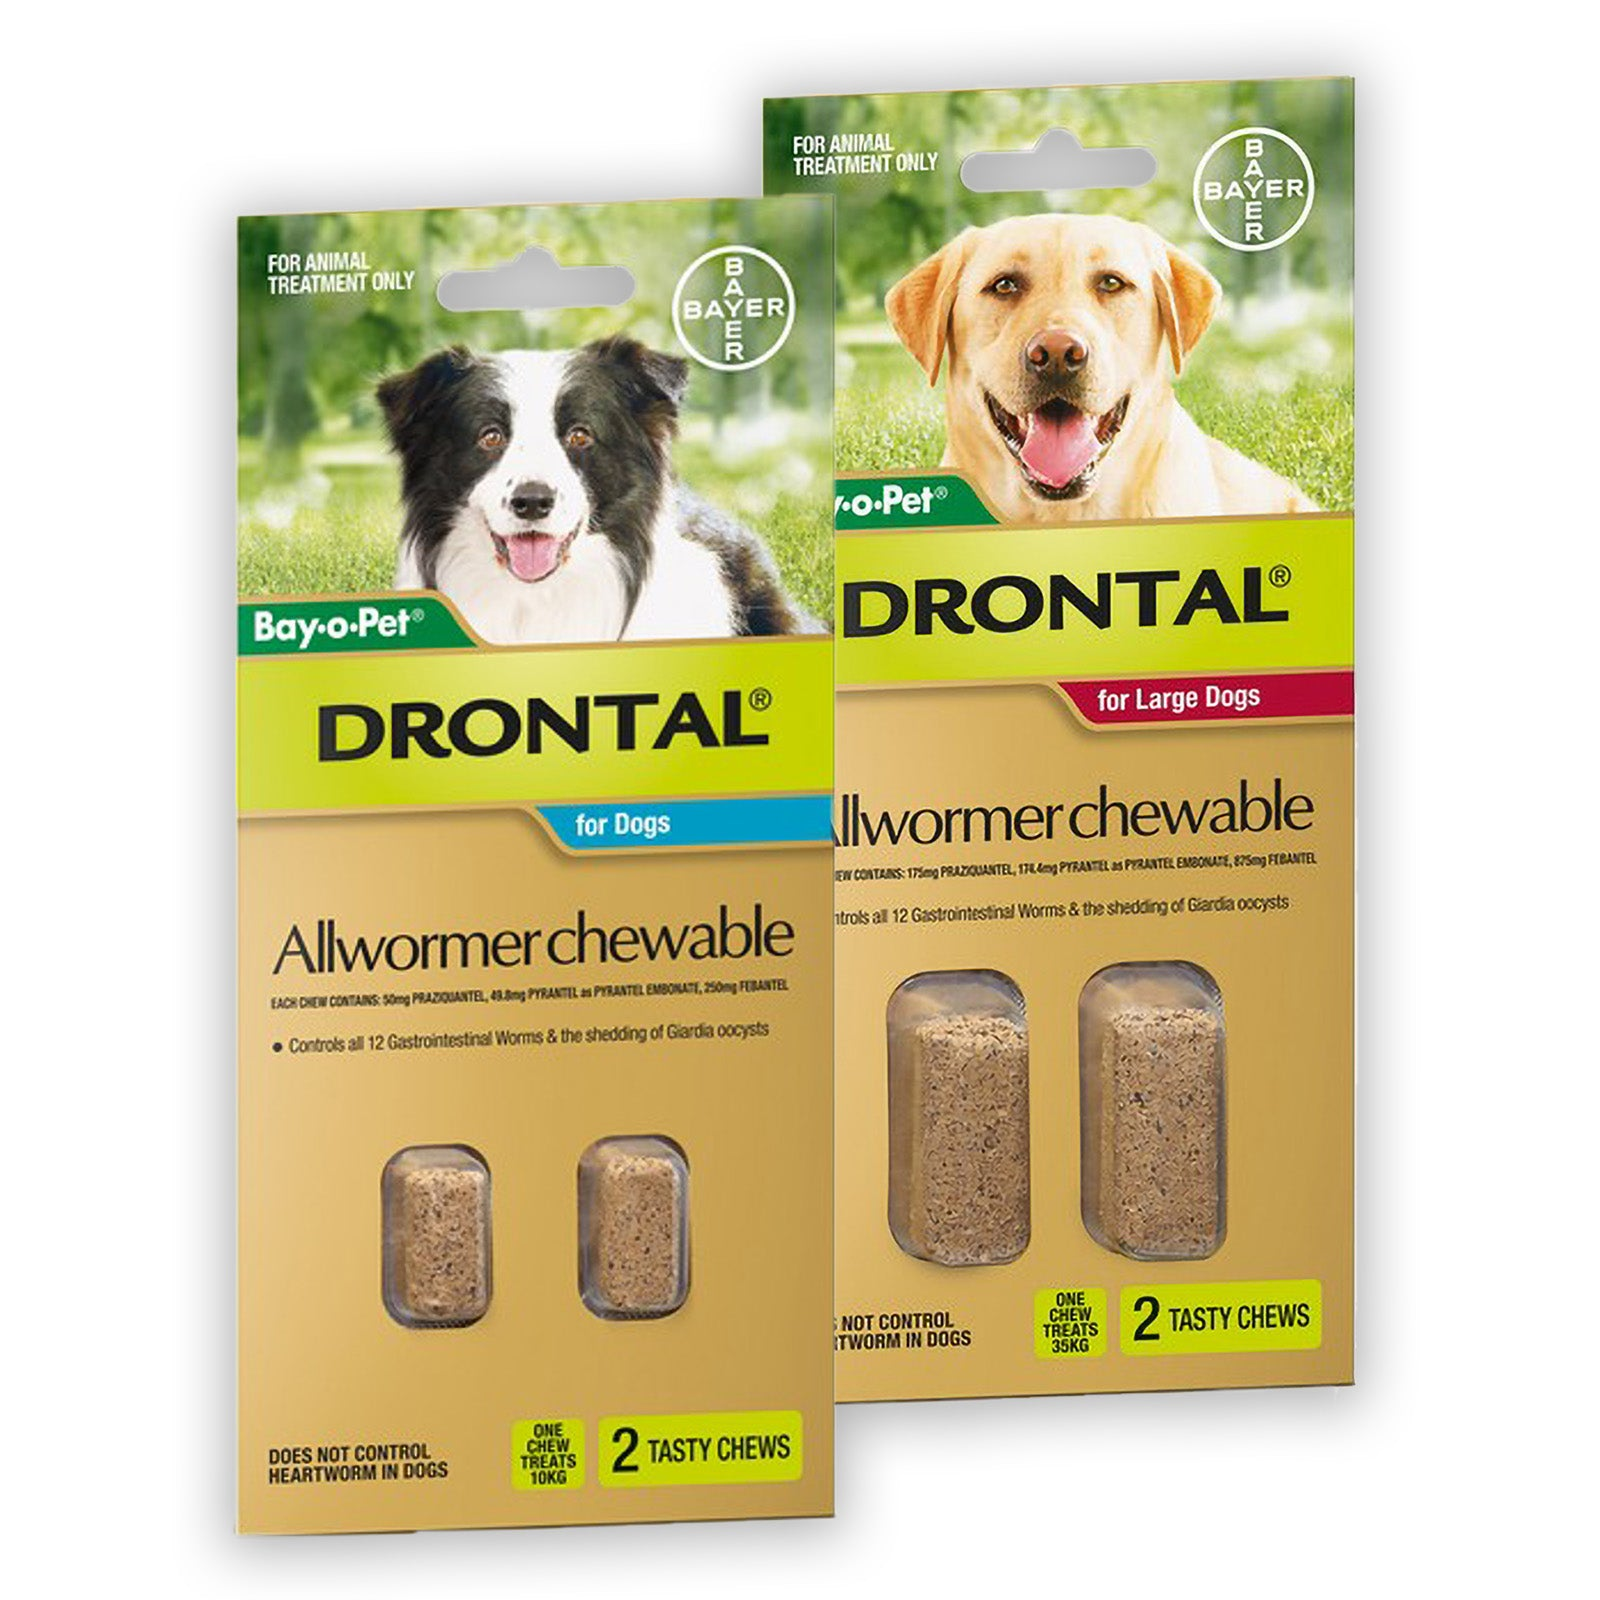 Drontal Chewable Worming Tablets for Dogs